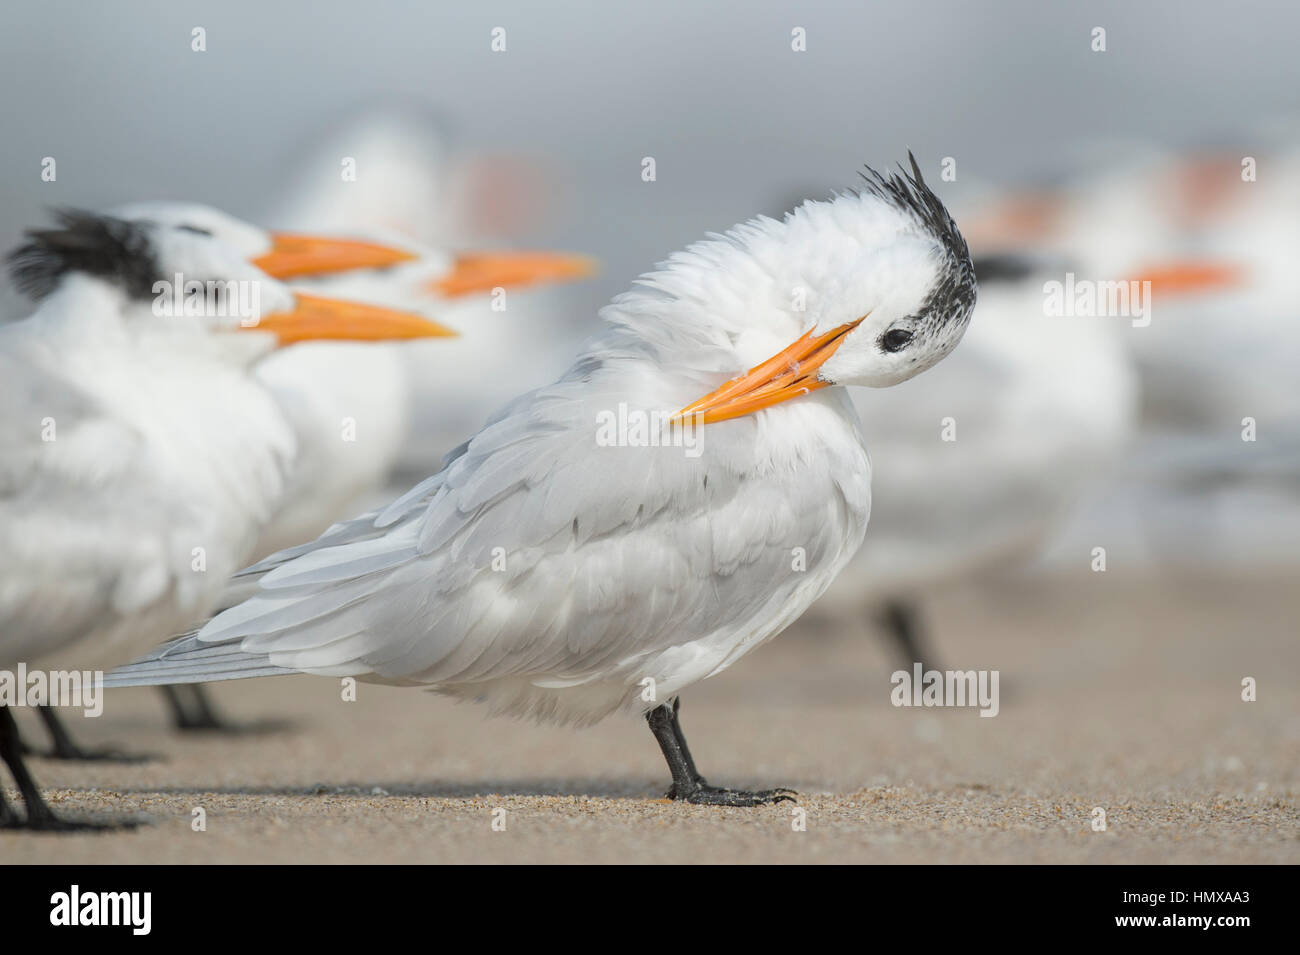 A Royal Tern stands on a sandy beach preening and cleaning its feathers with a flock of other terns around it. - Stock Image